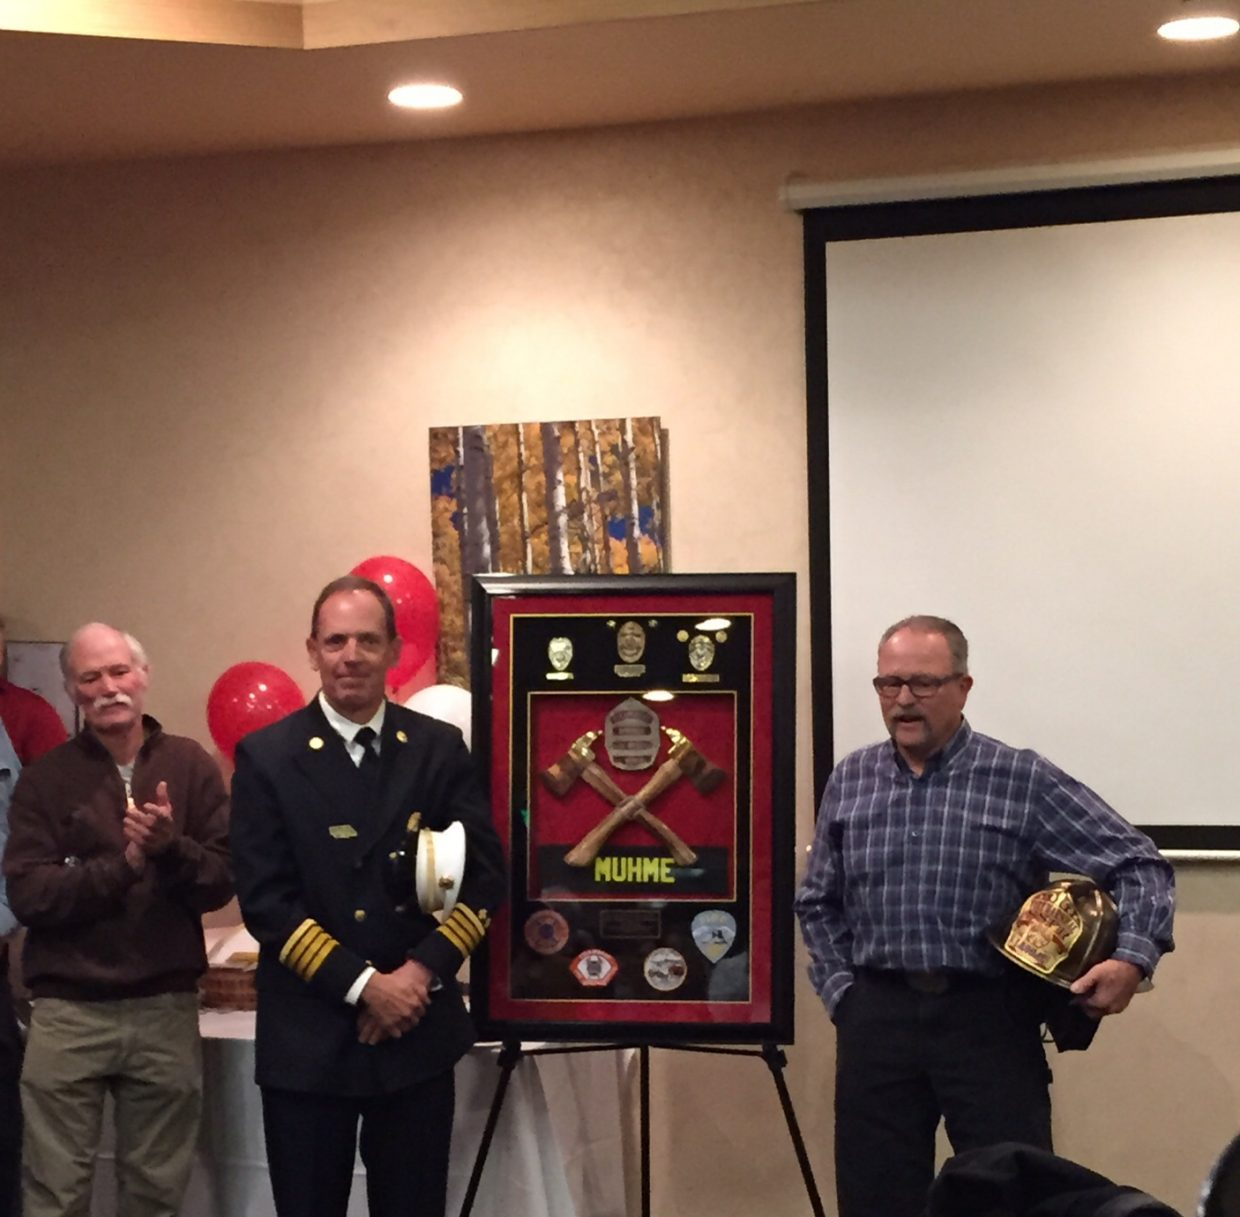 Steamboat Fire Marshal Jay Muhme's retirement party. Submitted by: Craig Malchow